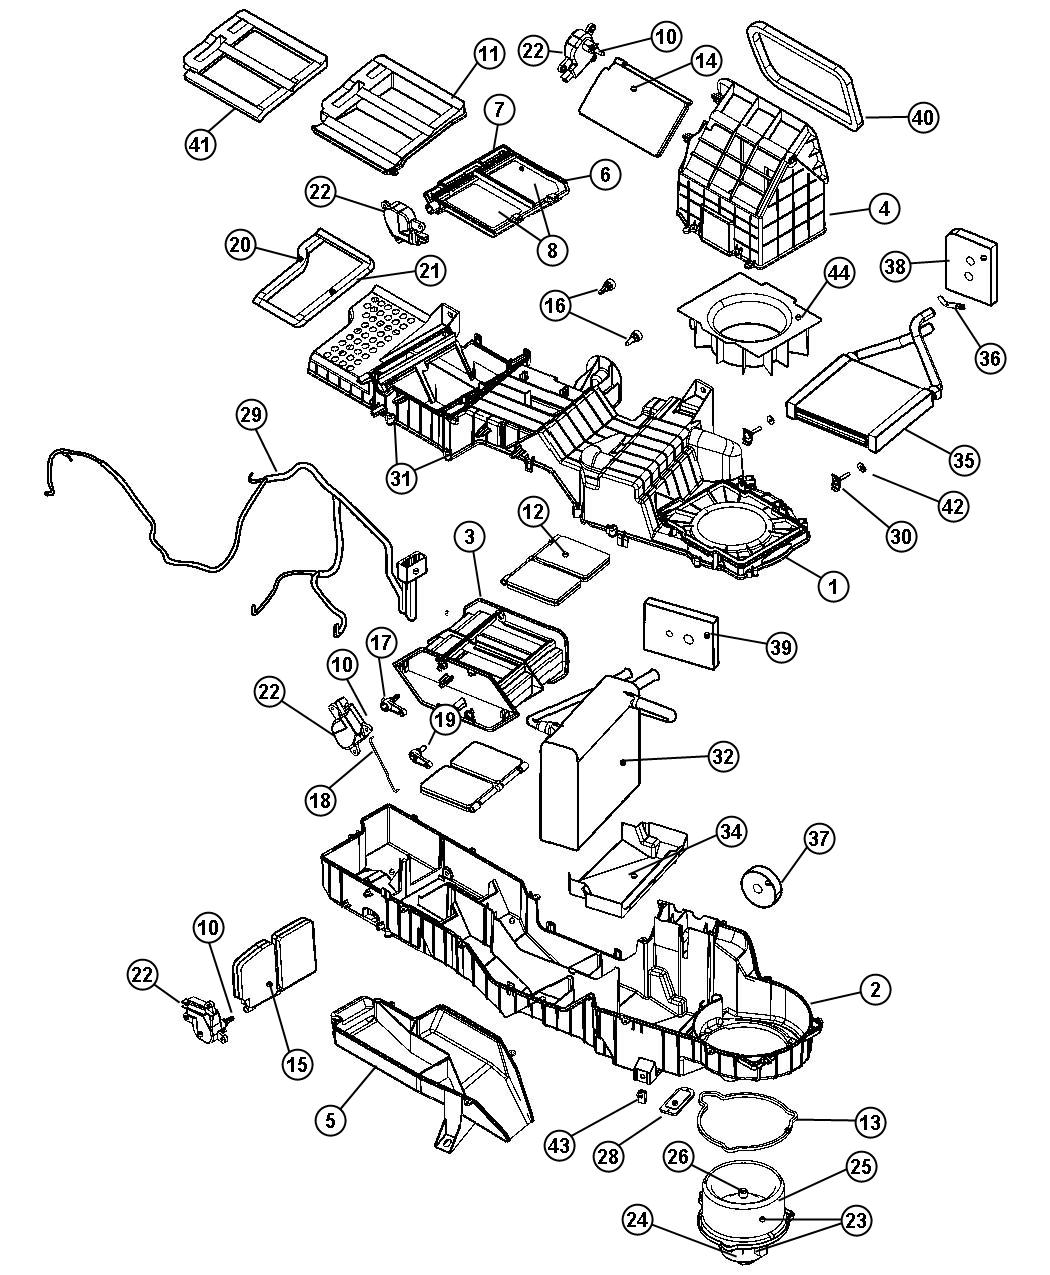 2000 Dodge Ram Heater Diagram, 2000, Free Engine Image For